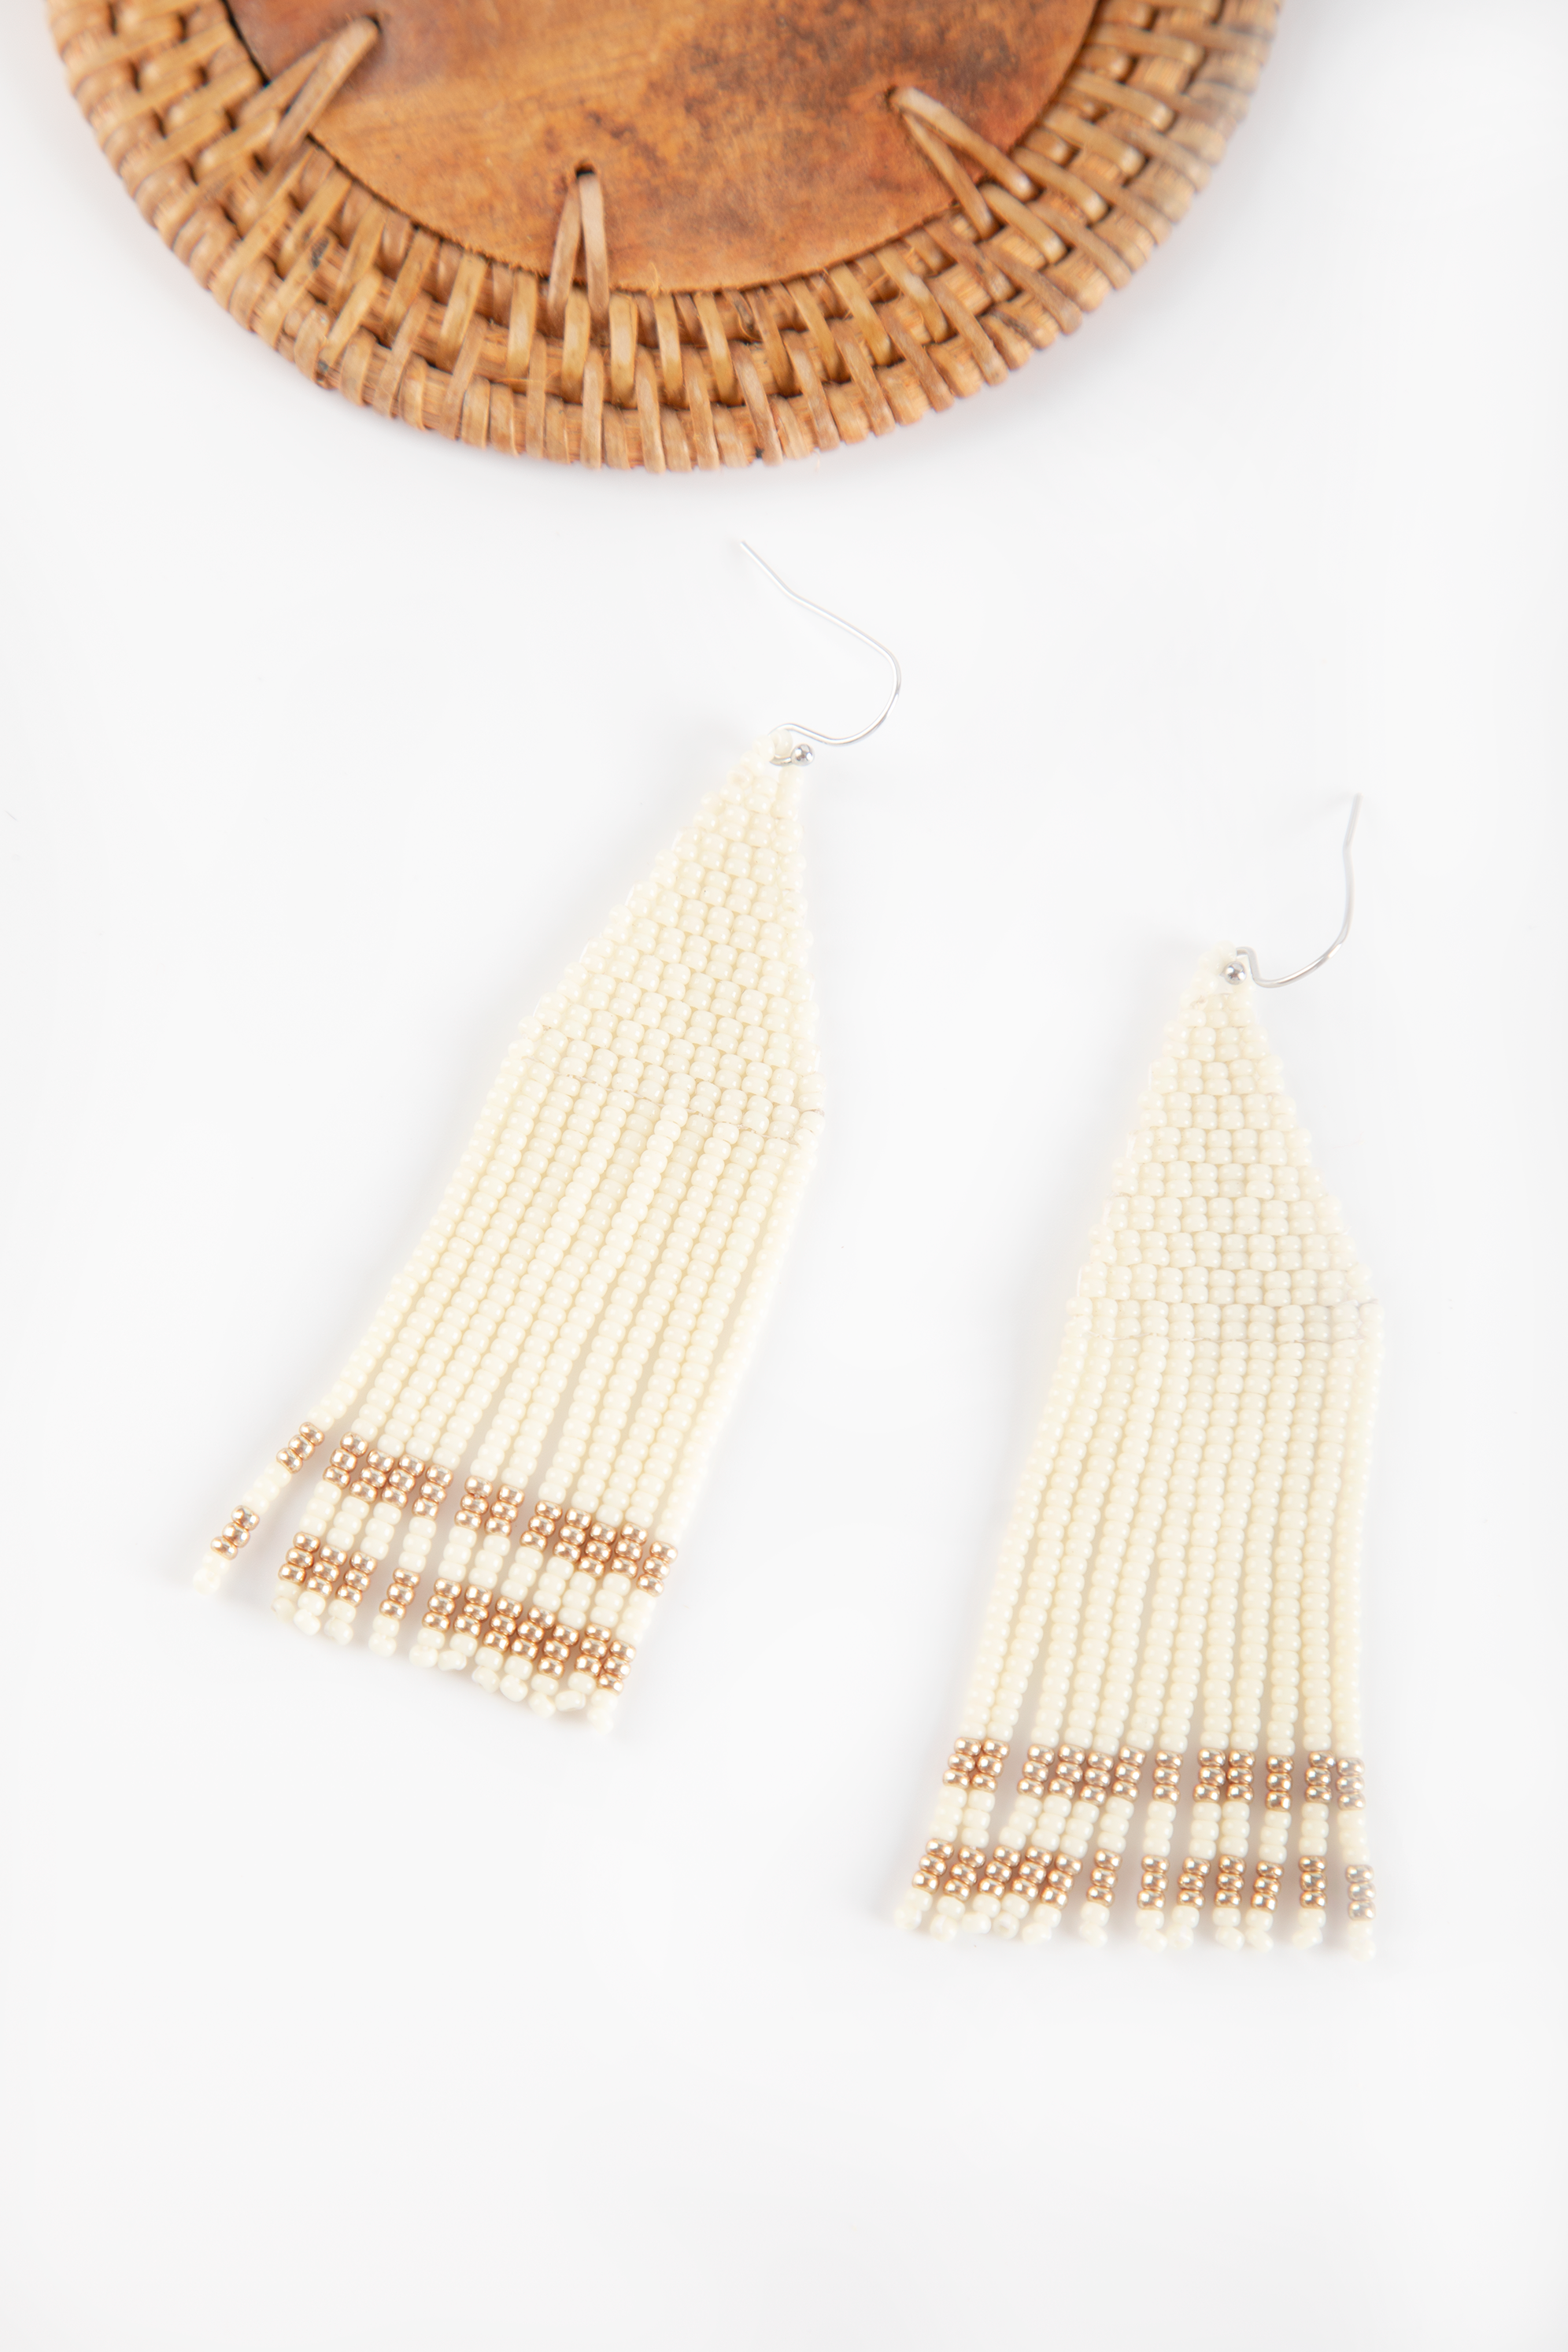 Zola Beaded Earrings - Ivory with Gold - Our Barehands